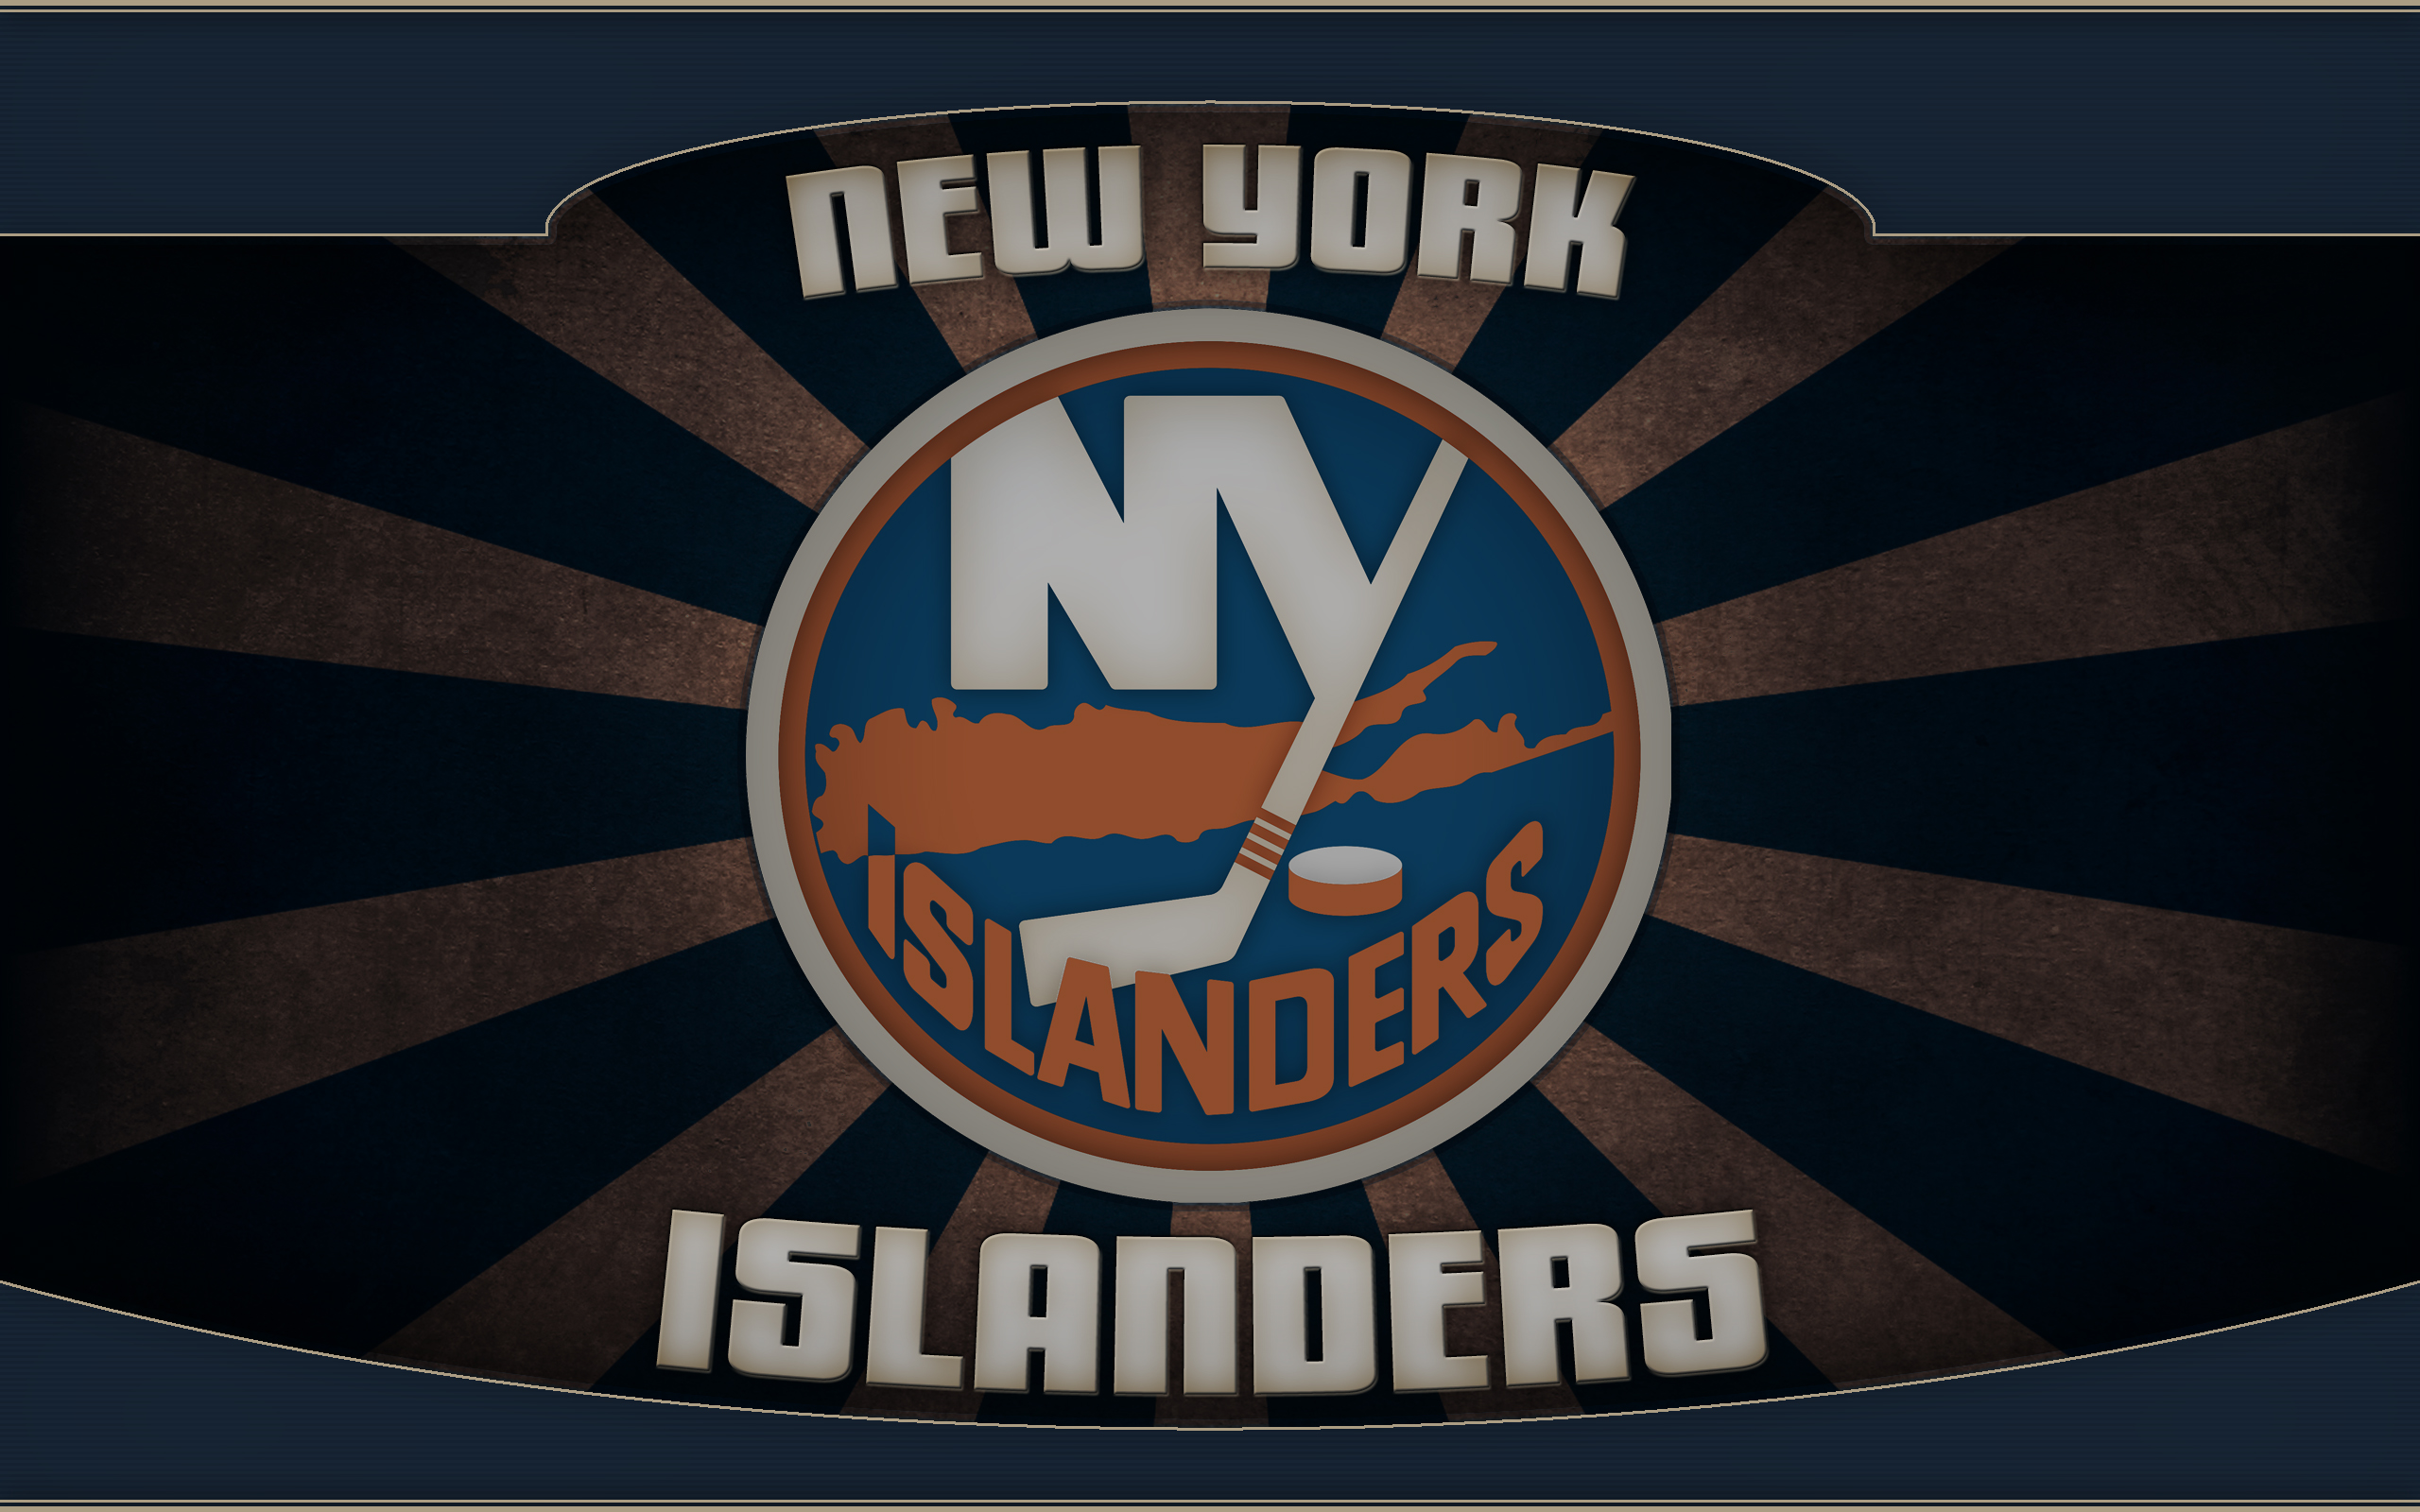 New York Islanders by bbboz 2560x1600